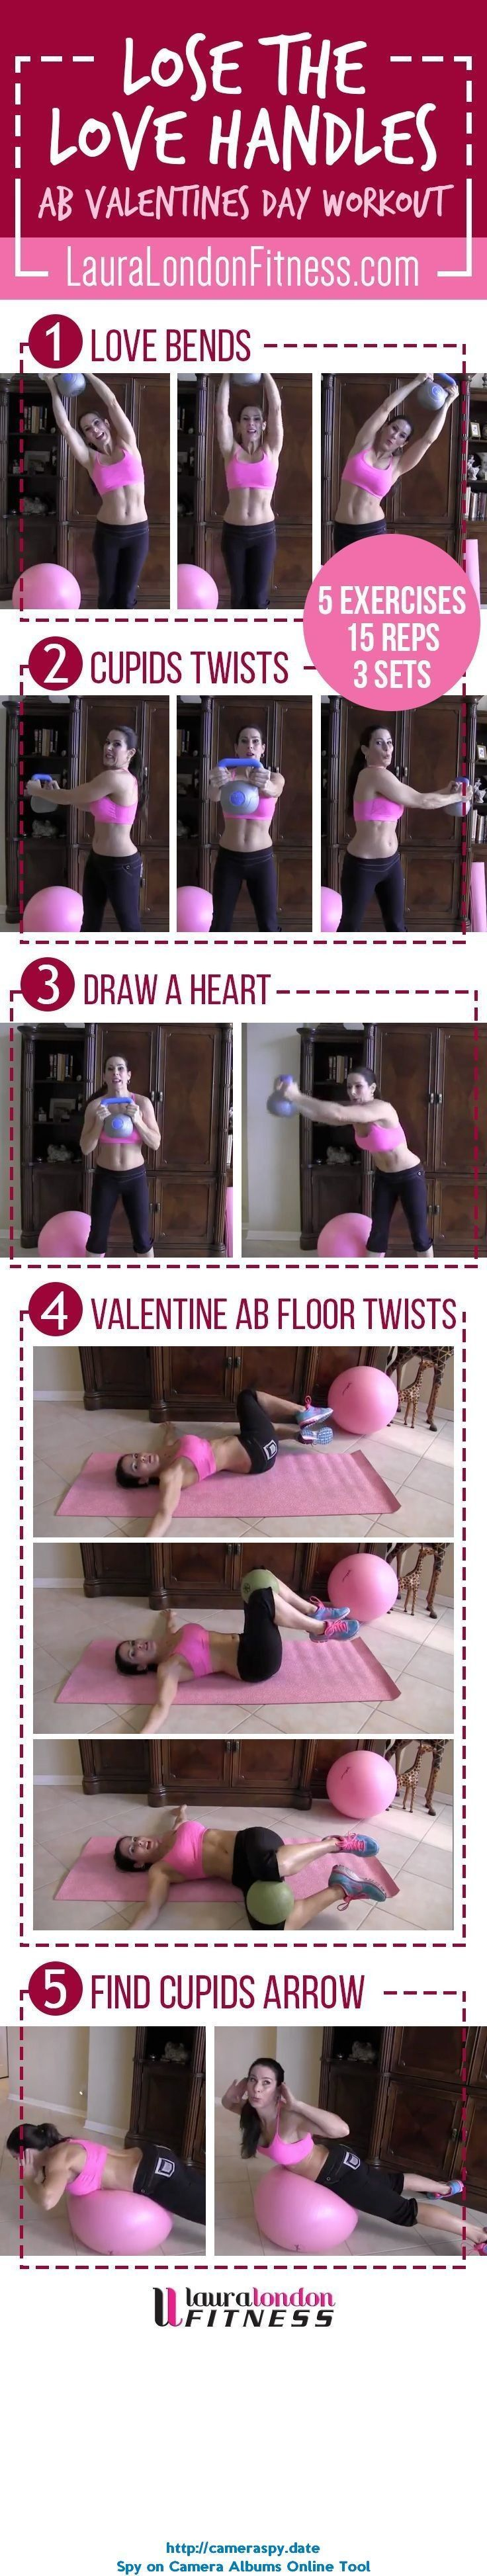 Lose the Love Handles, muffin top what ever you call that extra weight around your middle. Let's crush it with this workout. Share and Re-PIn too. Full video here: www.youtube.com/... #fitness #homeworkouts #lauralondonfitness